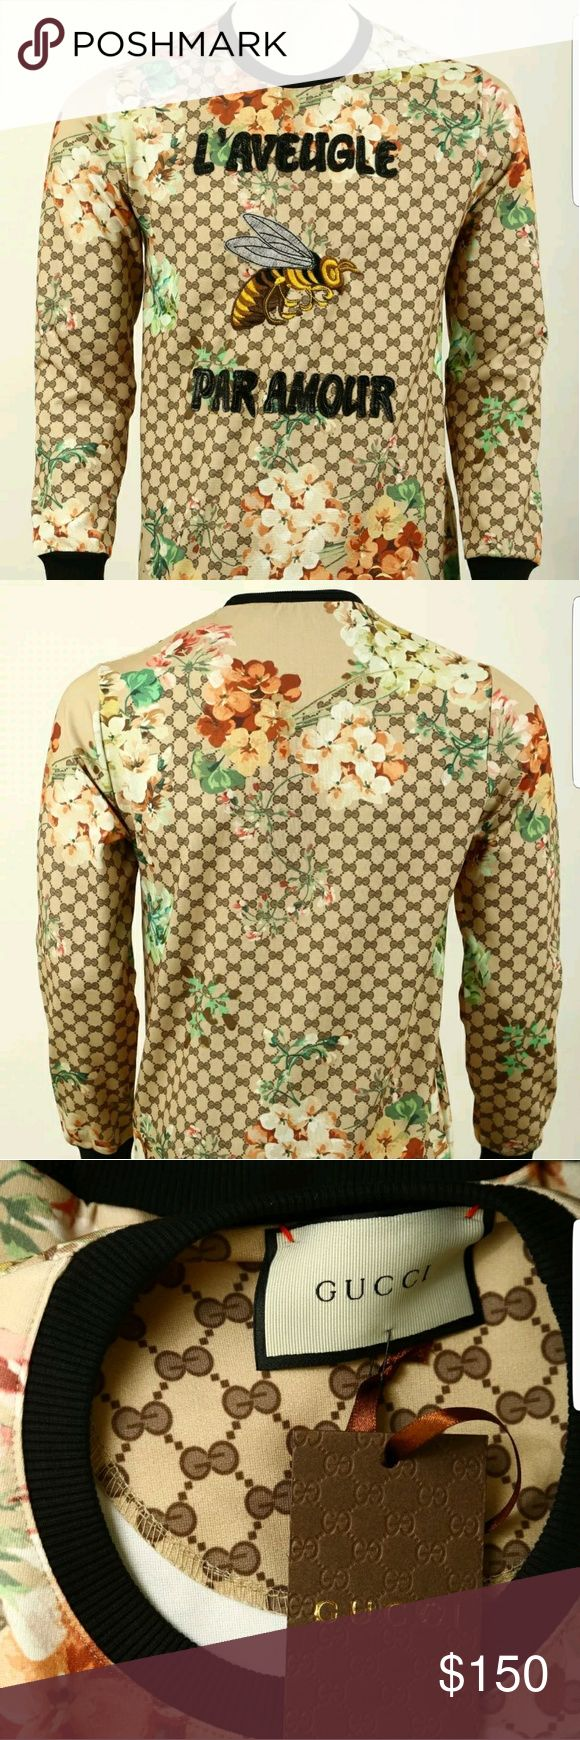 GUCCI SWEATER This sweater has the gucci logo all over so everyone will know you have on GUCCI. Its very lightweight so perfect with a pair of designer jeans Gucci Sweaters Crewneck